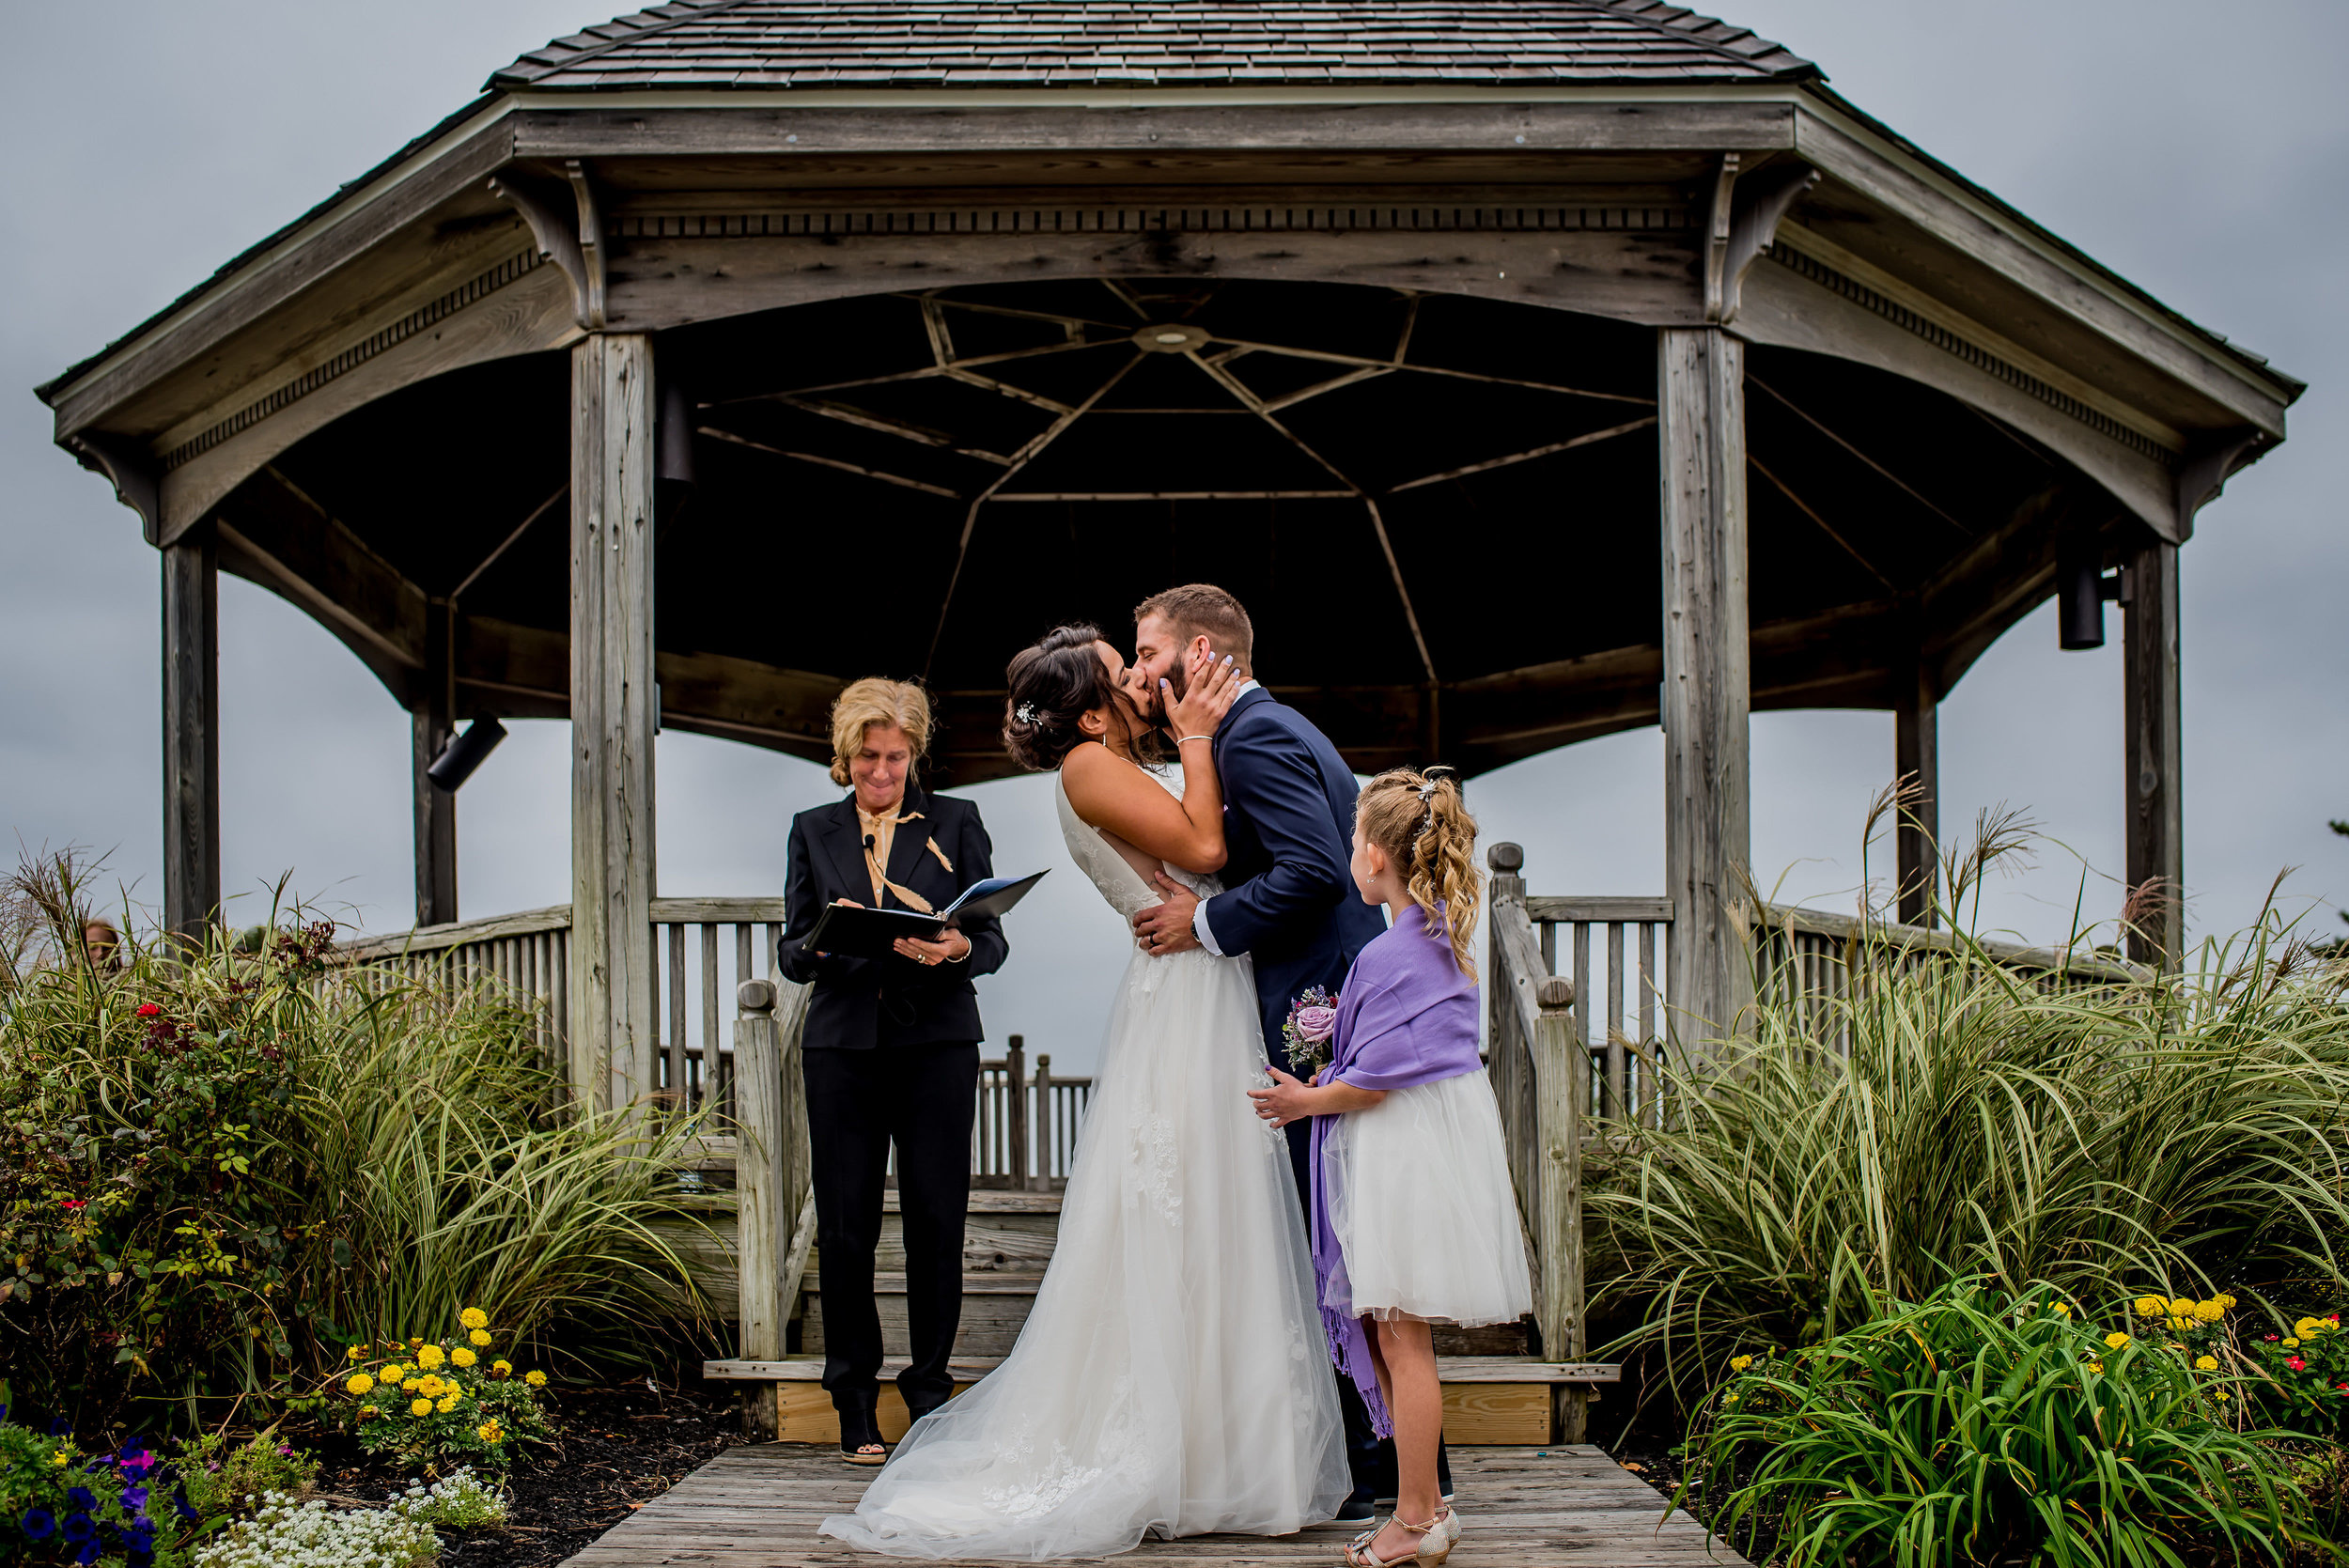 NJ PHOTOGRAPHER | SPRING LAKE PHOTOGRAPHER | SOUTH NJ JERSEY WEDDING PHOTOGRAPHER | THE KNOT | WEDDING WIRE | CENTRAL JERSEY WEDDING PHOTOGRAPHER | NORTH NJ JERSEY WEDDING PHOTOGRAPHER